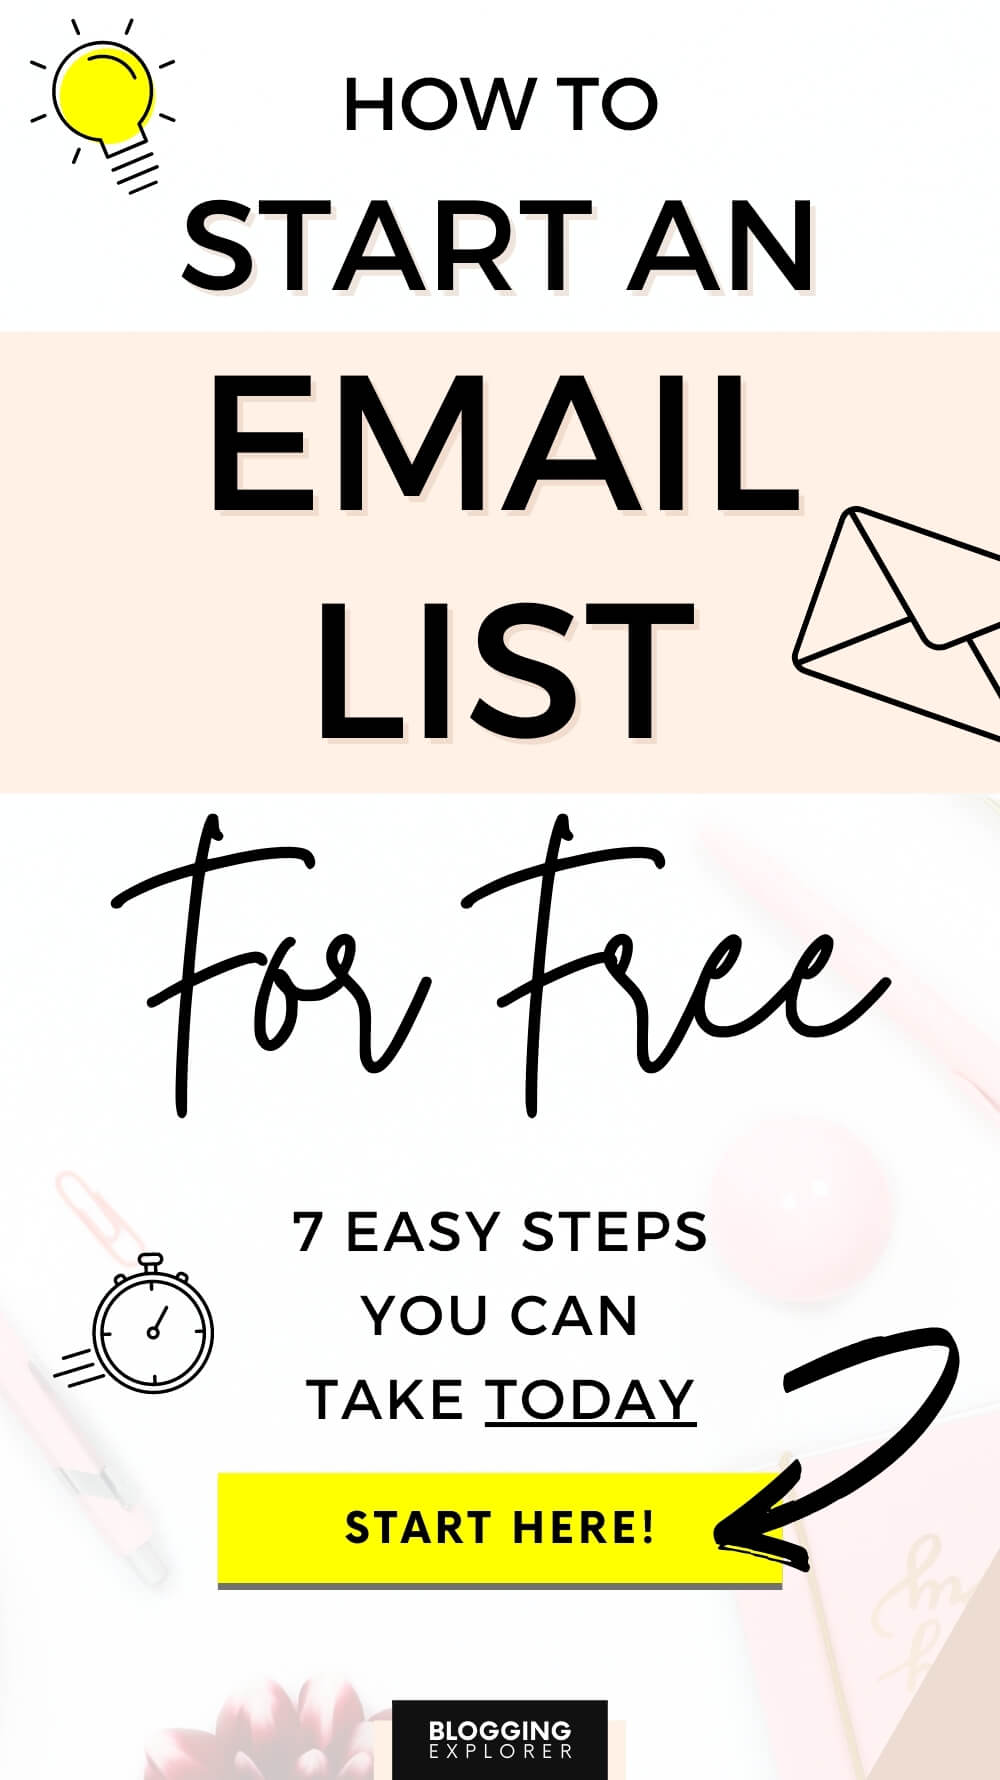 How to start an email list for free - Step by step guide for bloggers